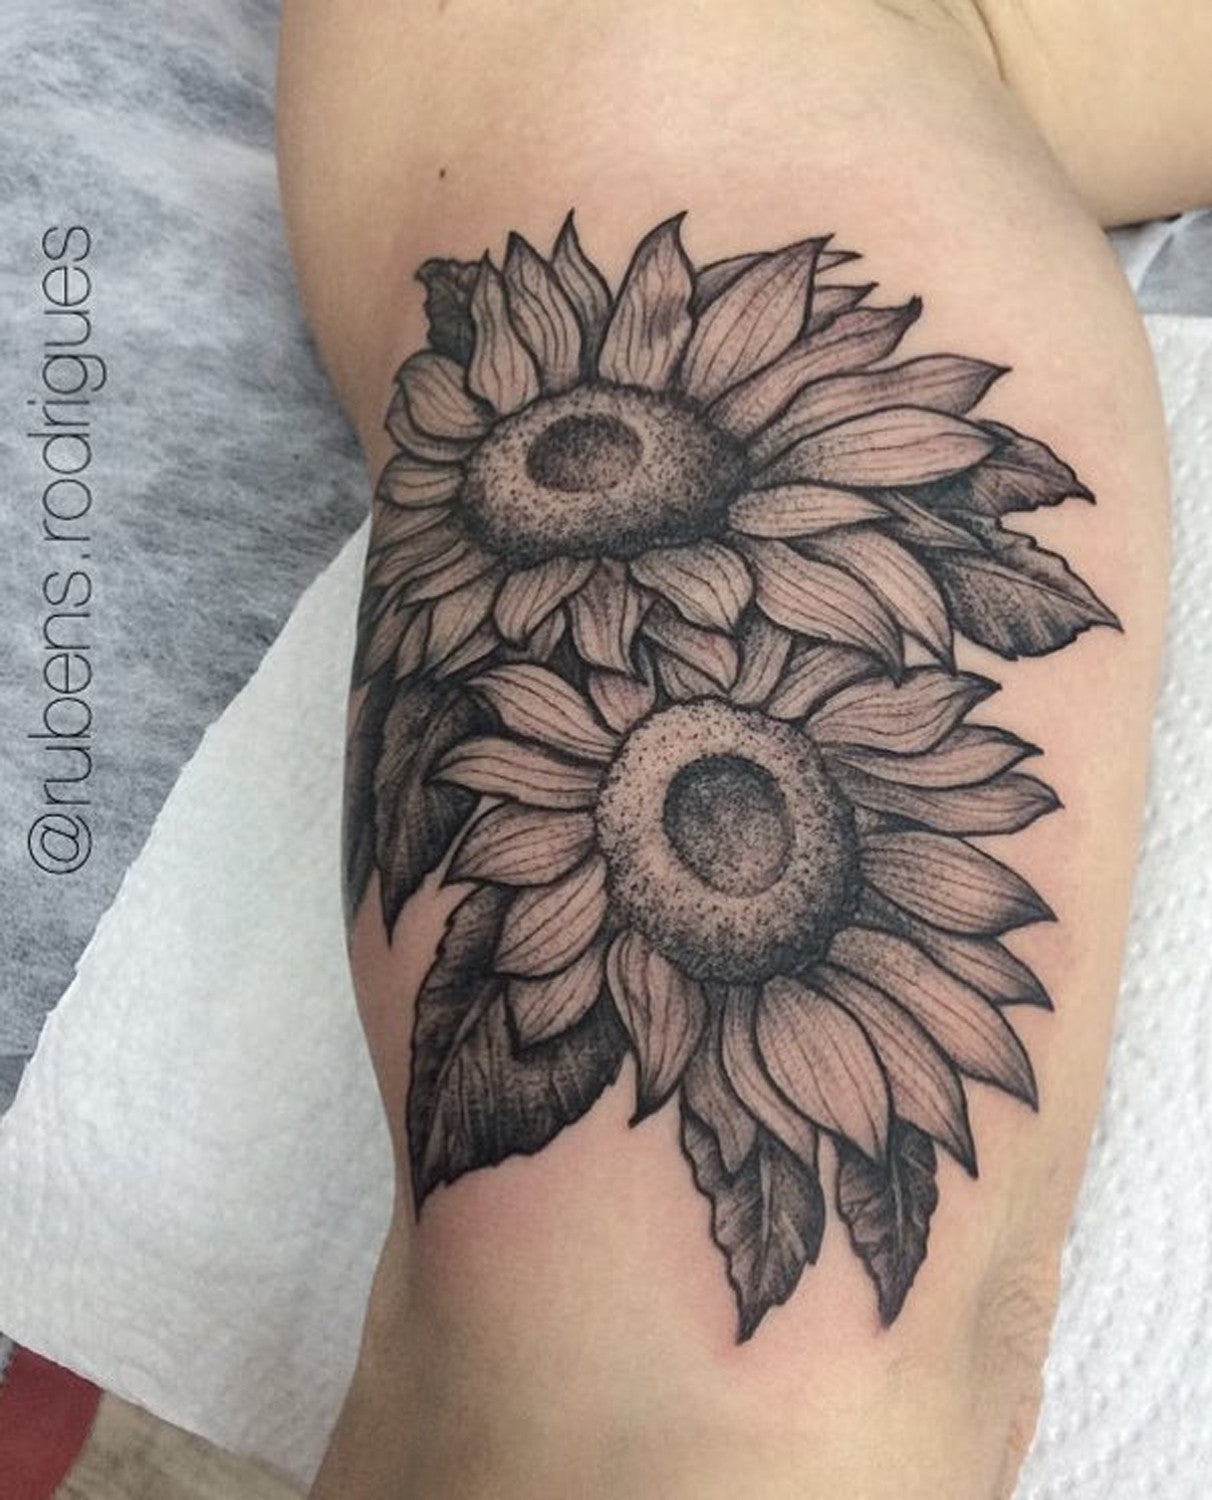 20 of the most boujee sunflower tattoo ideas mybodiart for Sunflower temporary tattoo